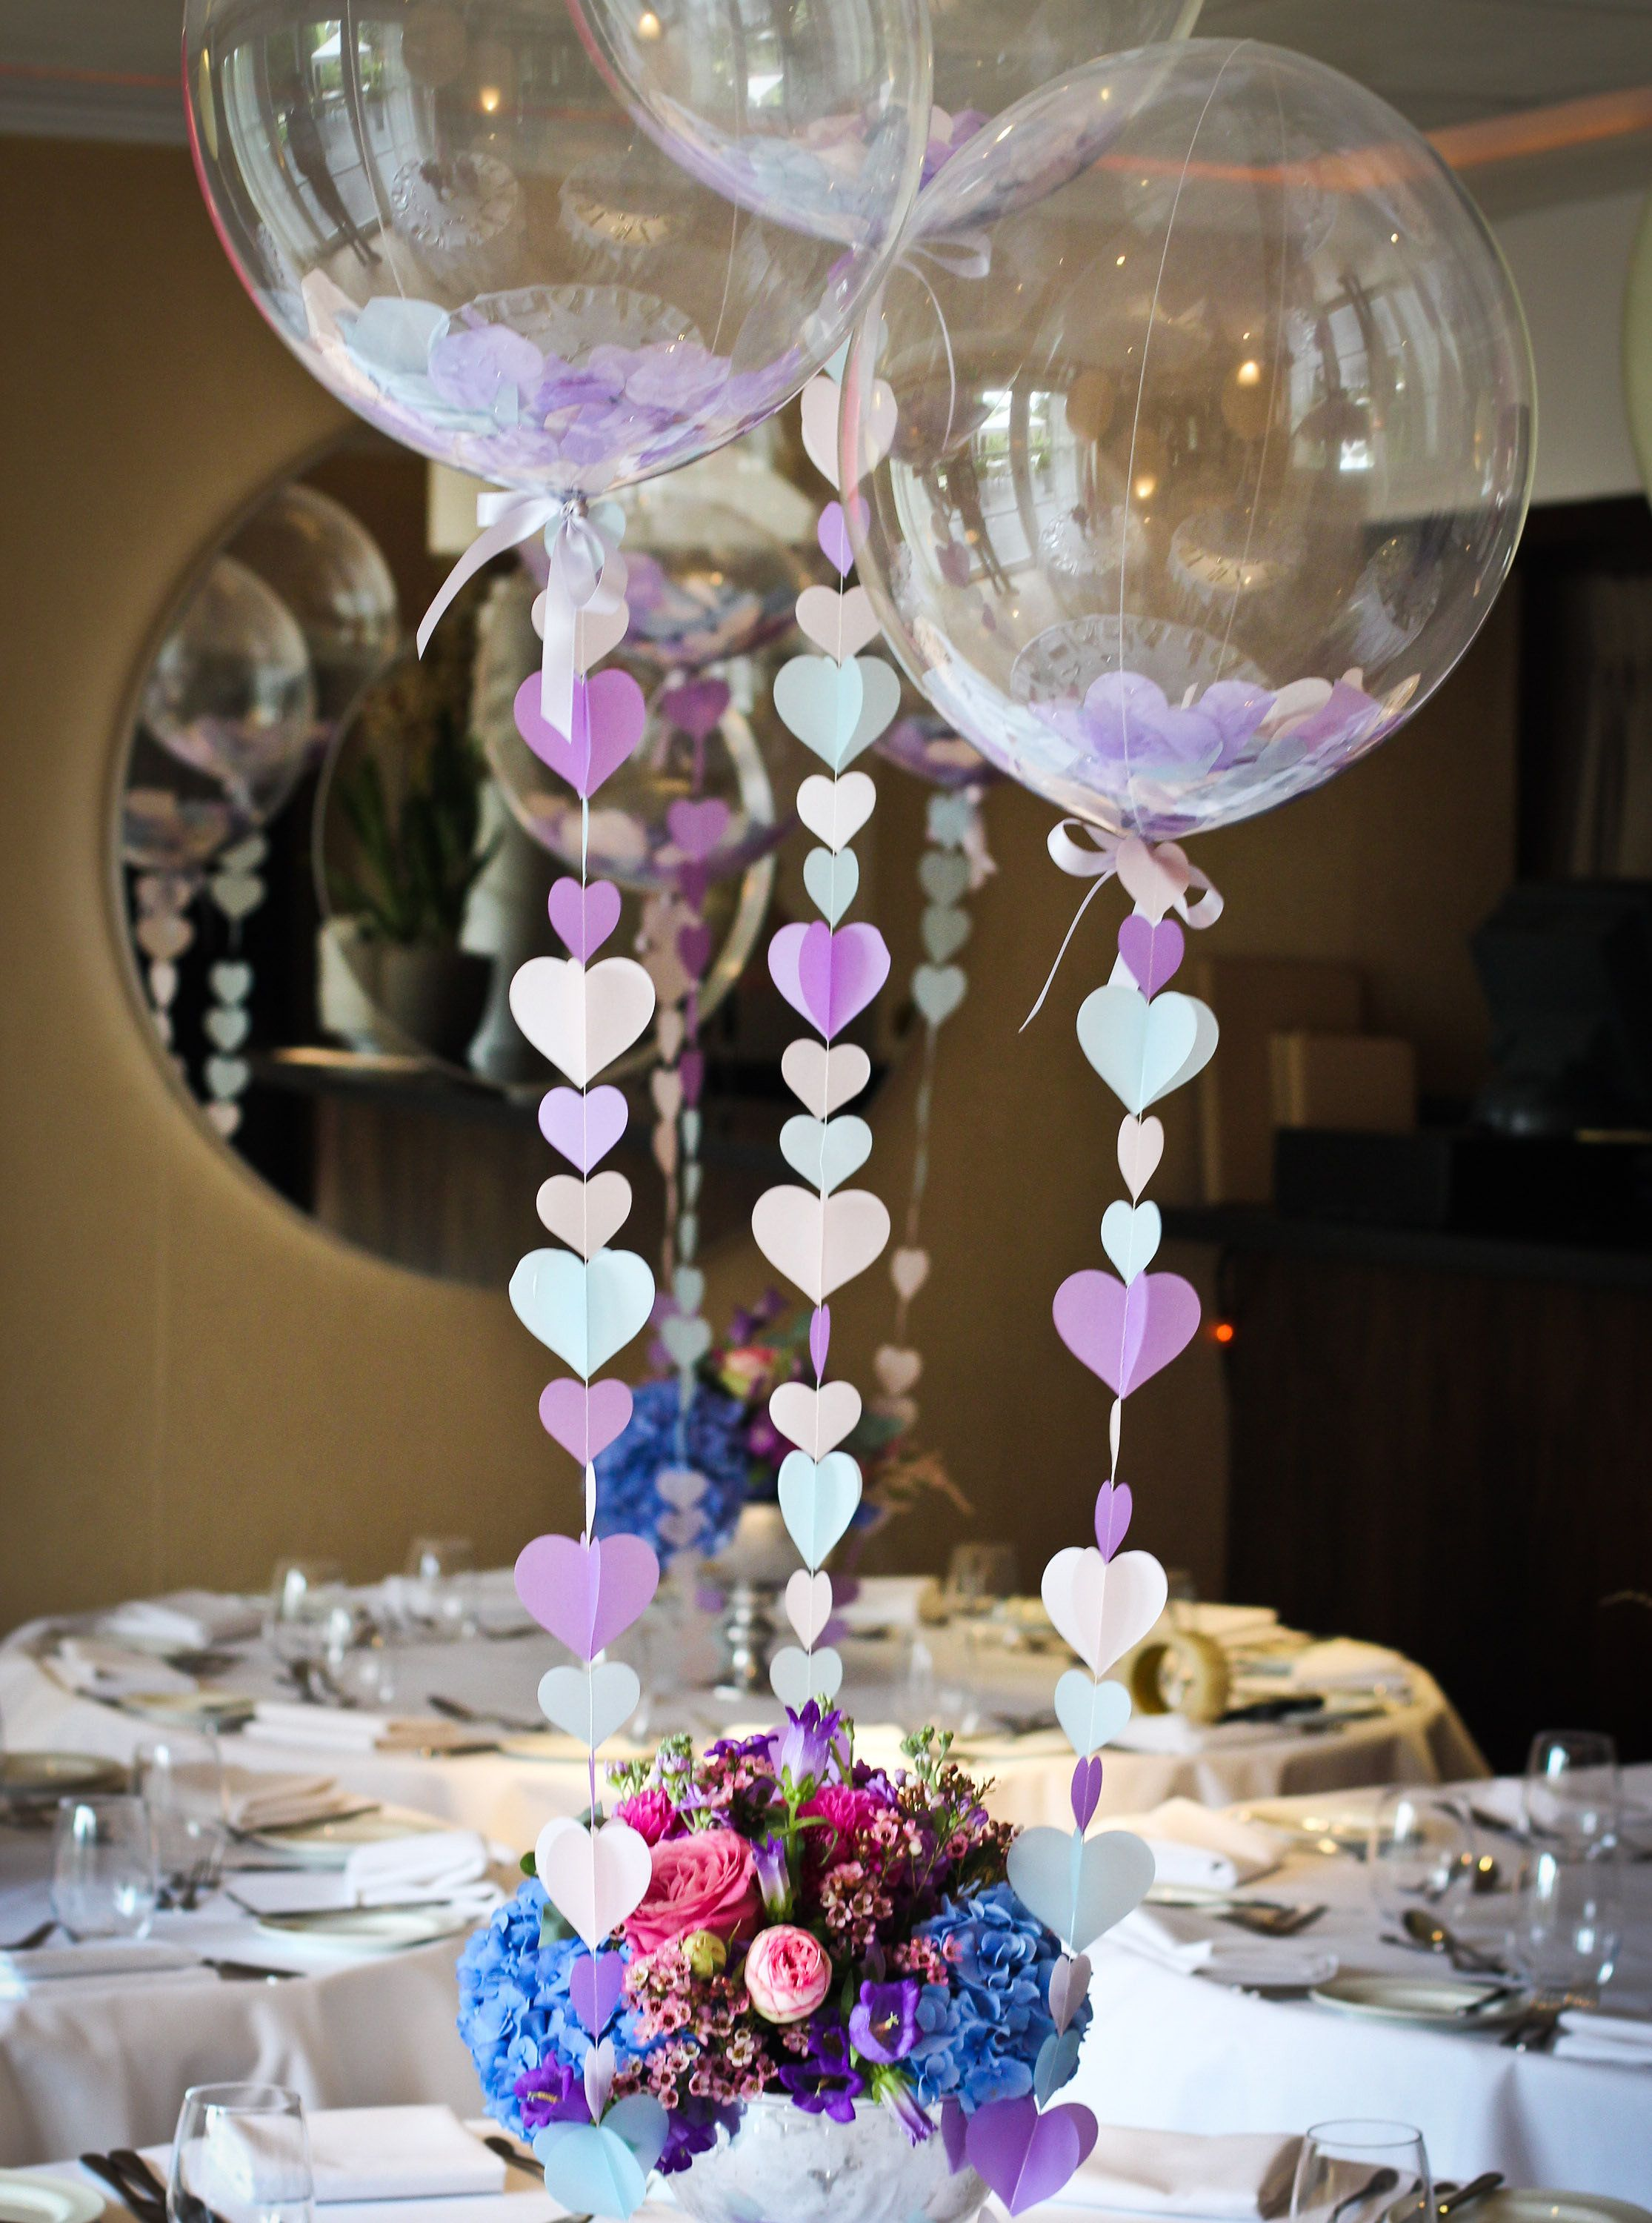 Balloon Decorations Table Centerpiece : Balloon centrepiece table decoration with heart strings